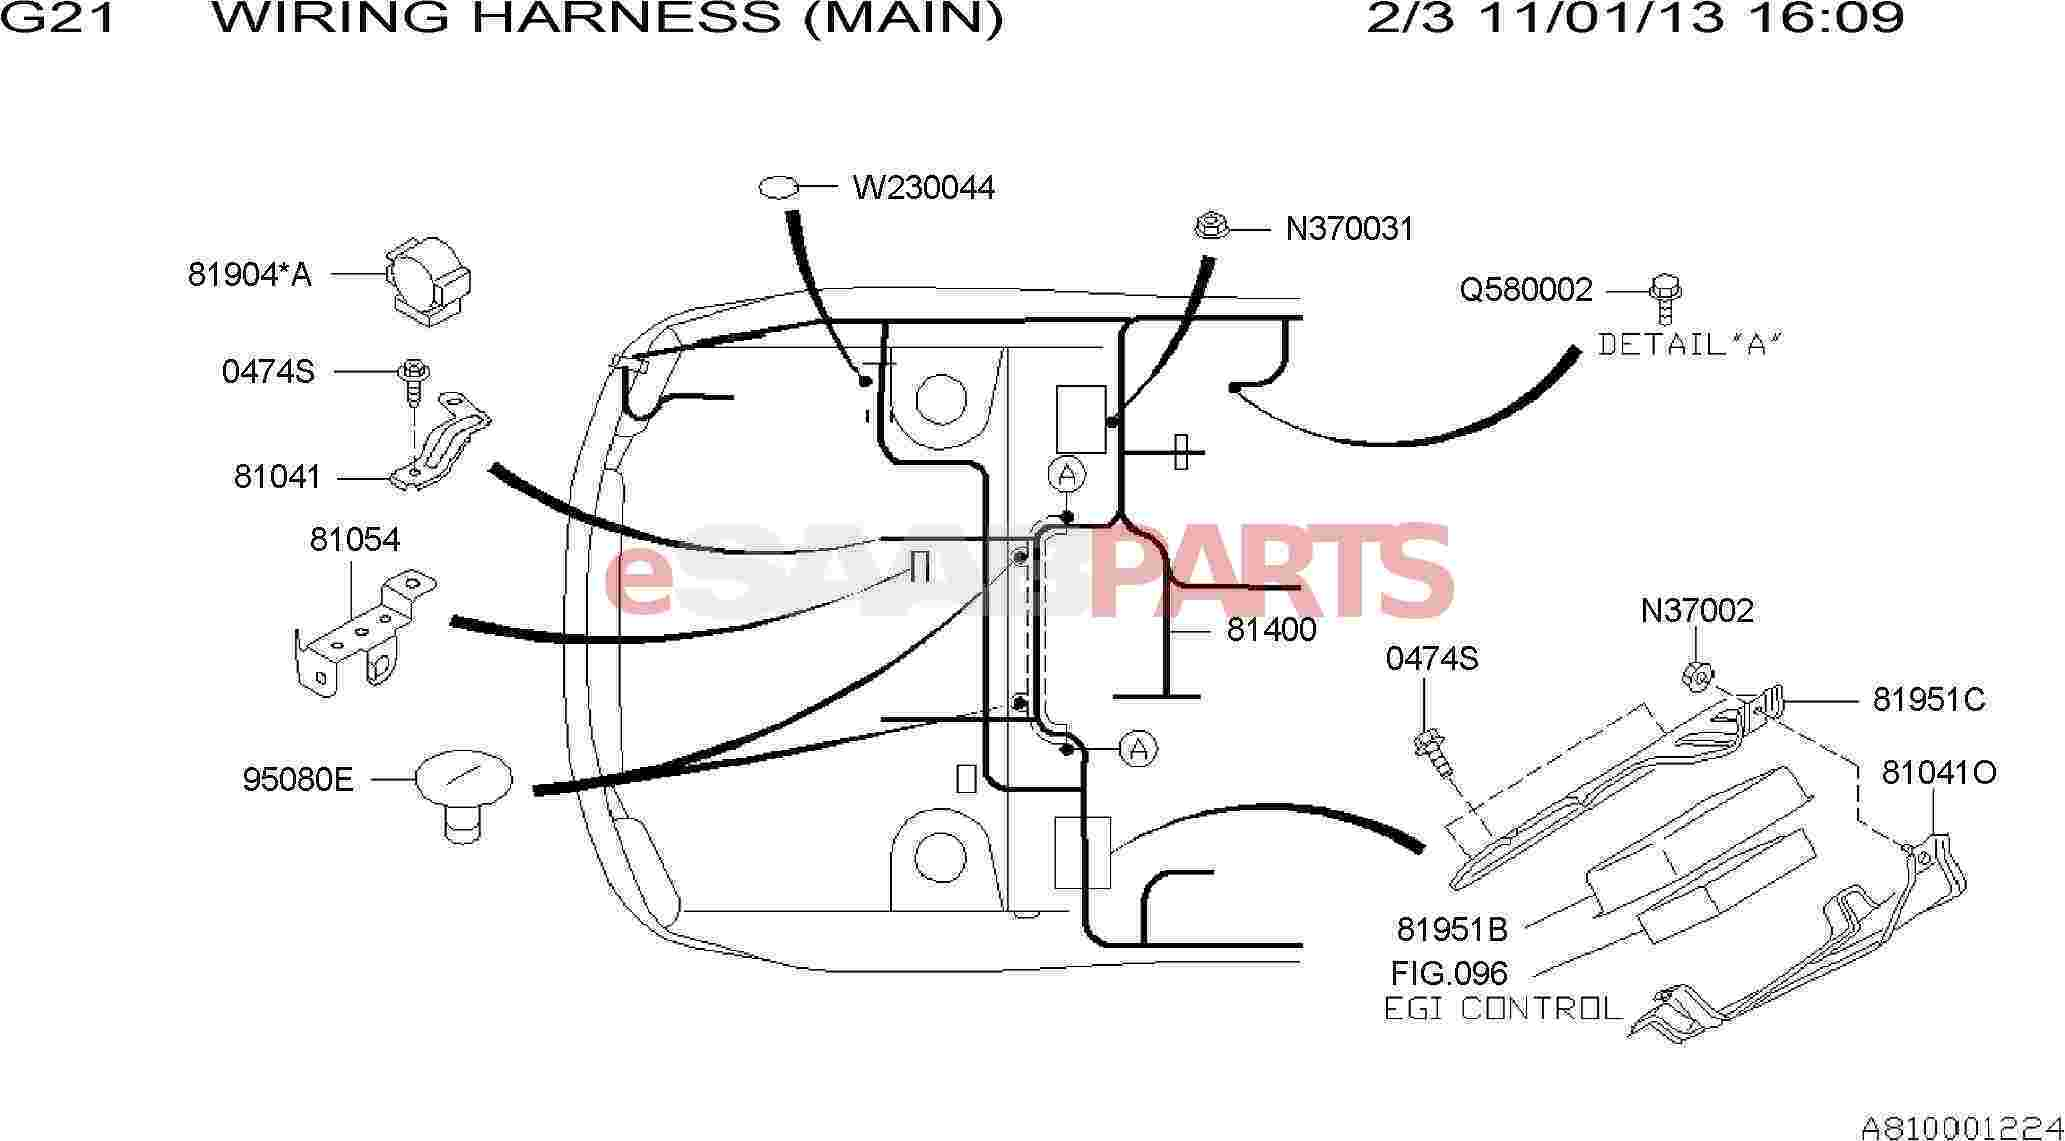 2006 Bmw 325xi Fuse Box Diagram together with 2003 Bmw 525i Wiring Diagram besides Mercury Grand Marquis Fuse Box Diagram Wiring Amazing furthermore 2000 Bmw E53 Wiring Diagram in addition 06 Impala Fuse Box Diagram. on 2003 bmw 525i fuse box diagram